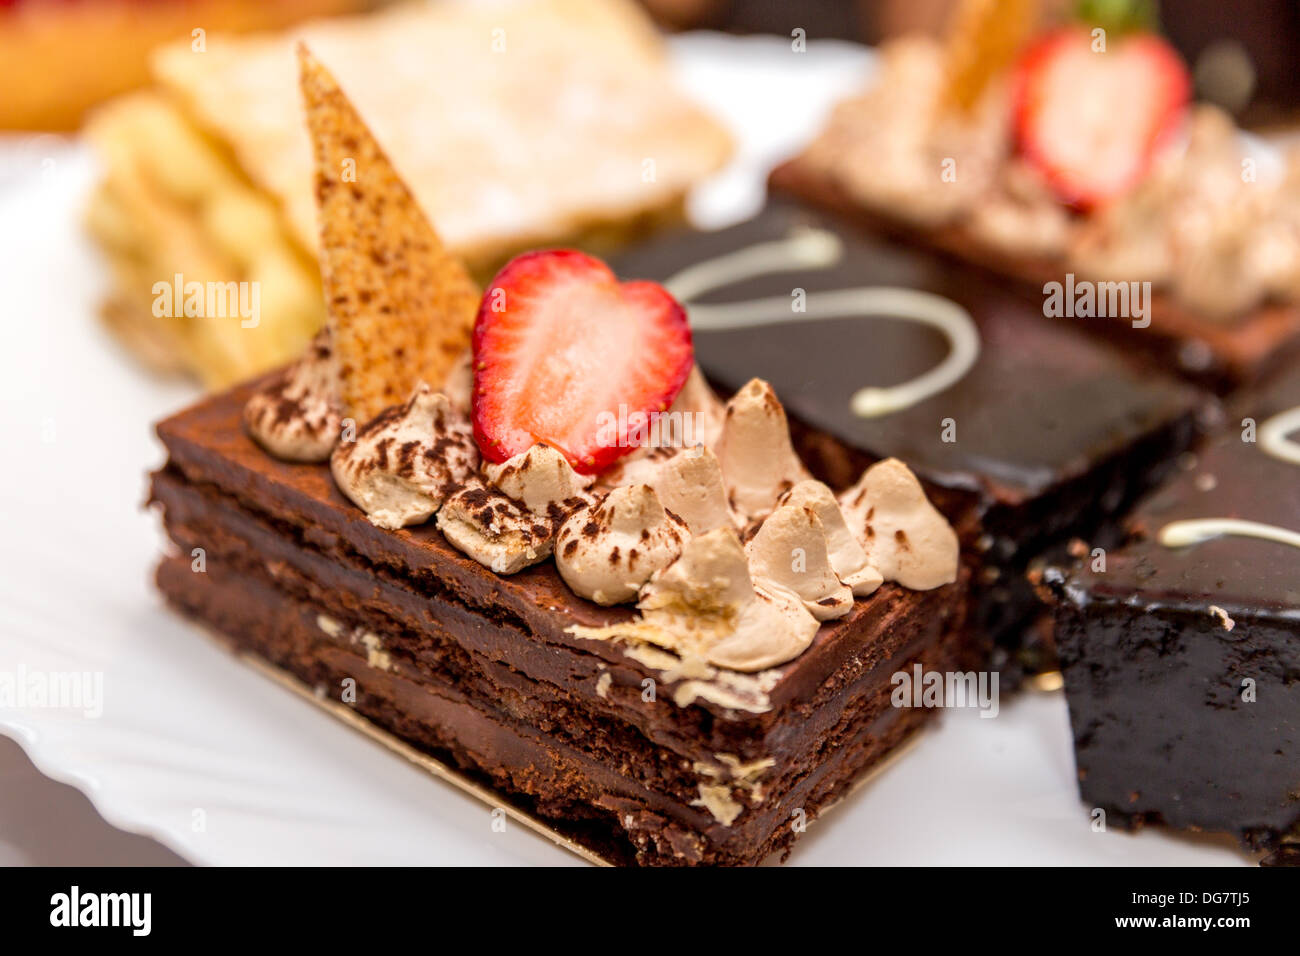 Beautifully decorated chocolate brownie with strawberry topping - Stock Image